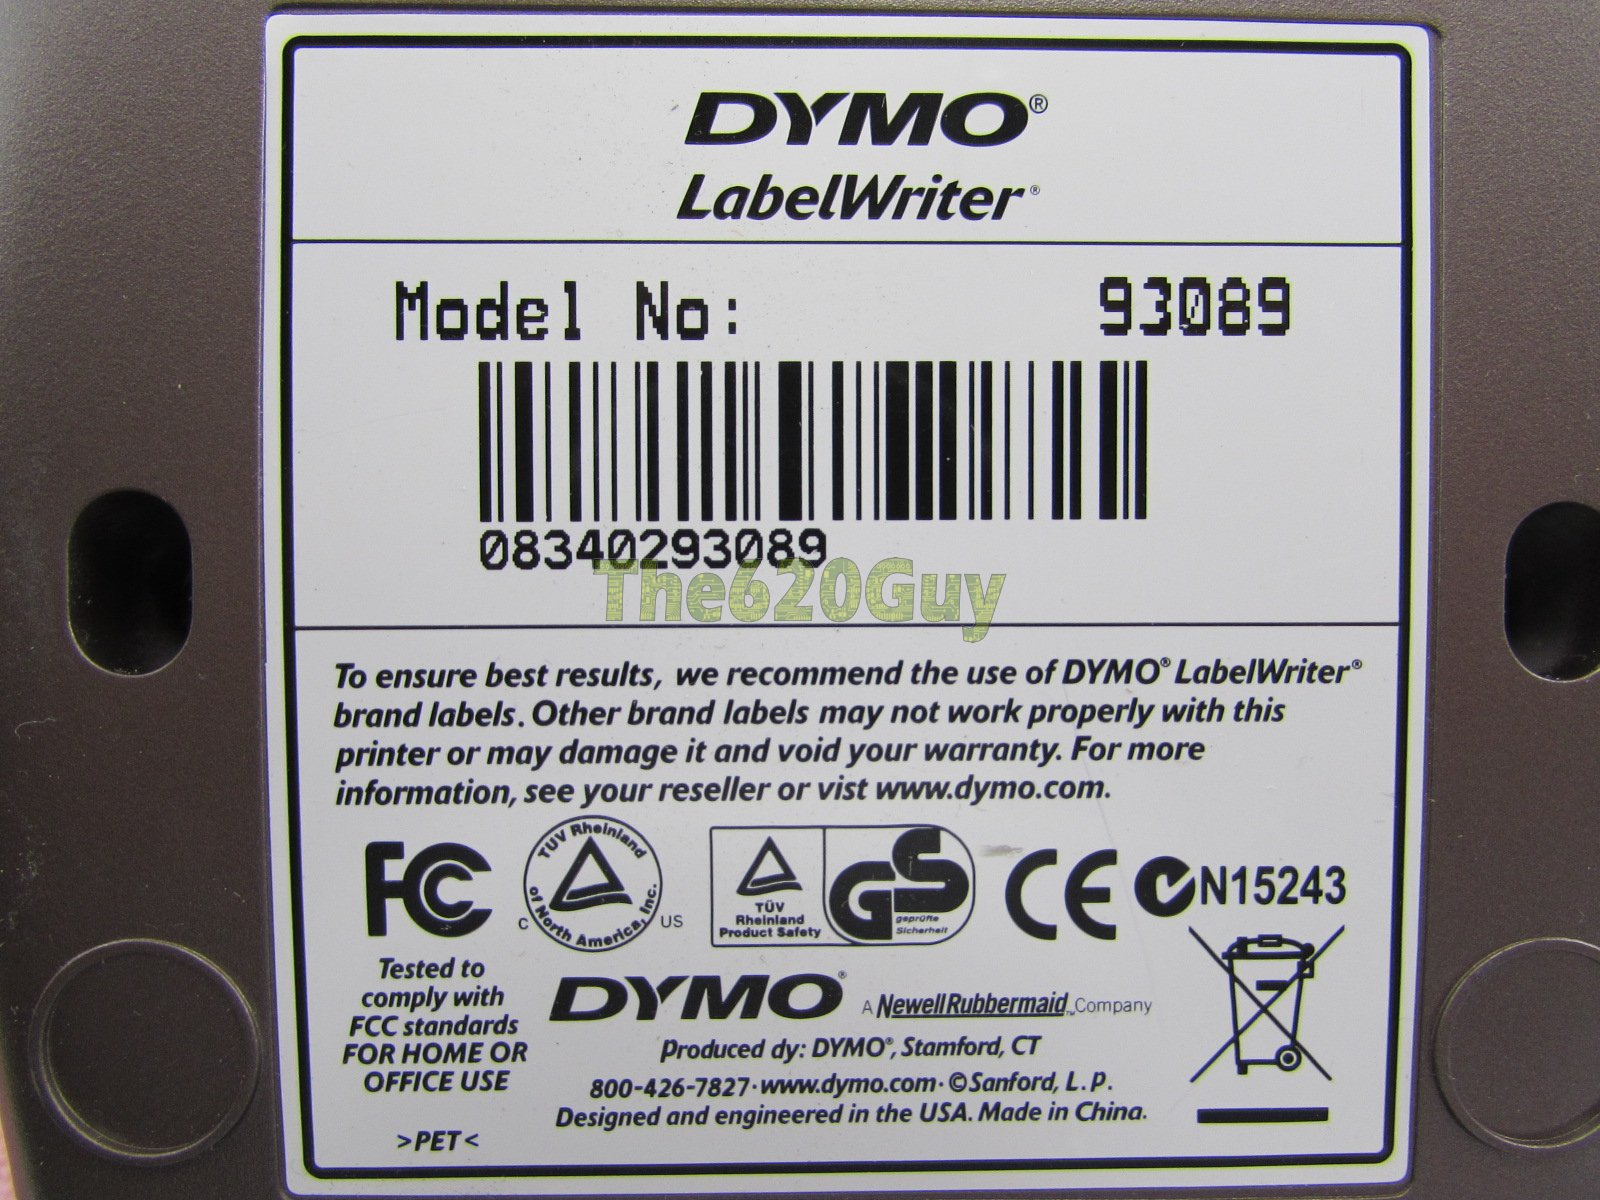 Dymo labelwriter 400 label writer printer pc mac 93089 for Dymo labelwriter 400 labels